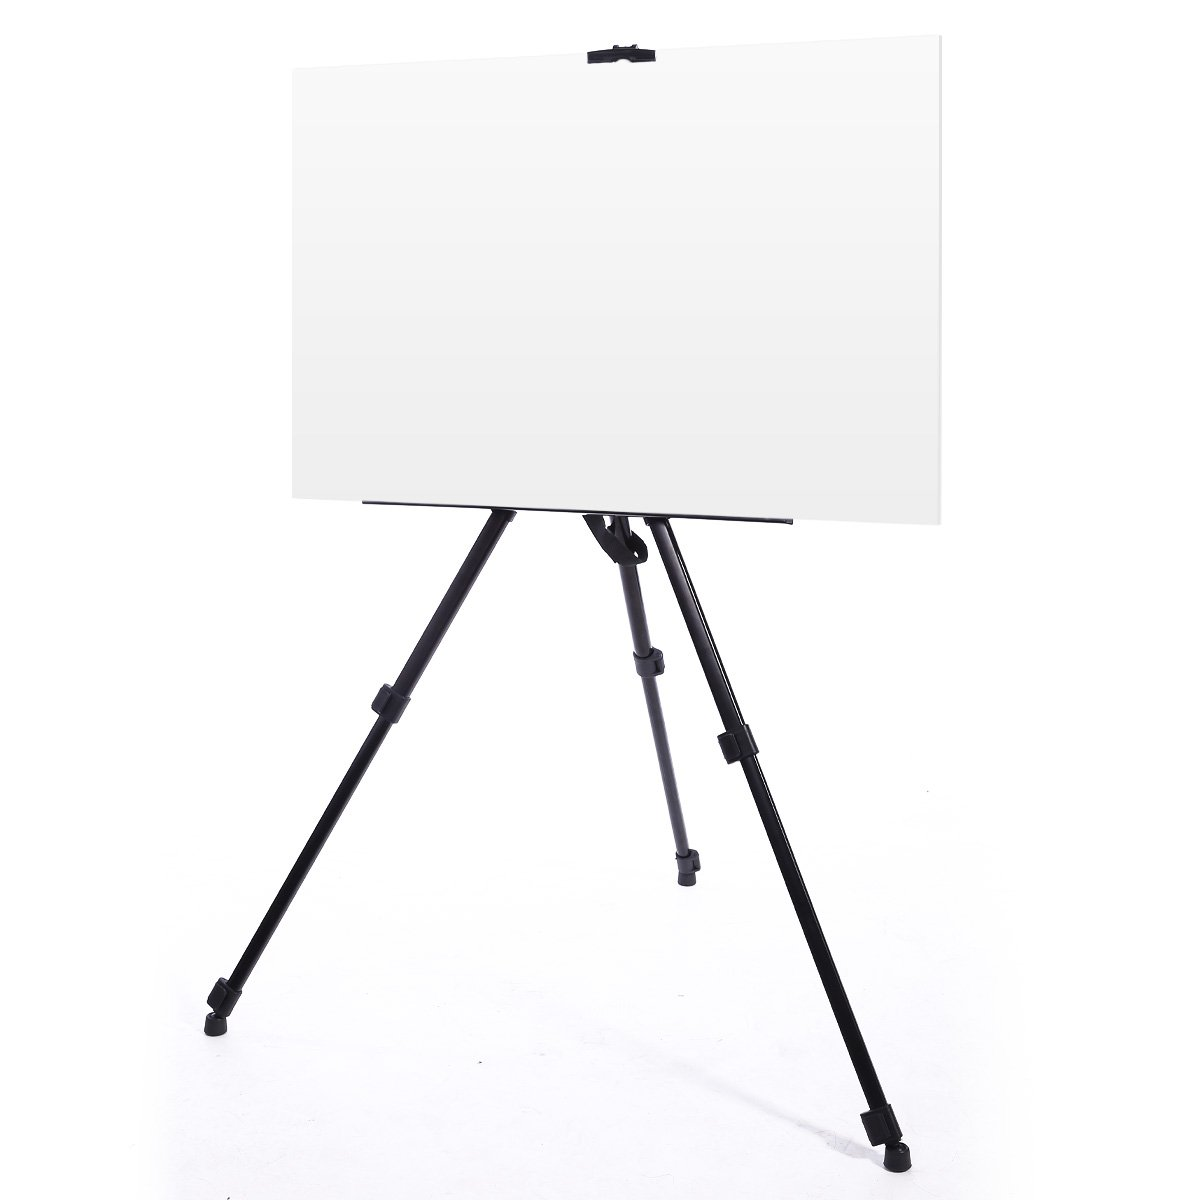 Anladia Artist campo studio pittura cavalletto treppiede display supporto per lavagna bianca segno